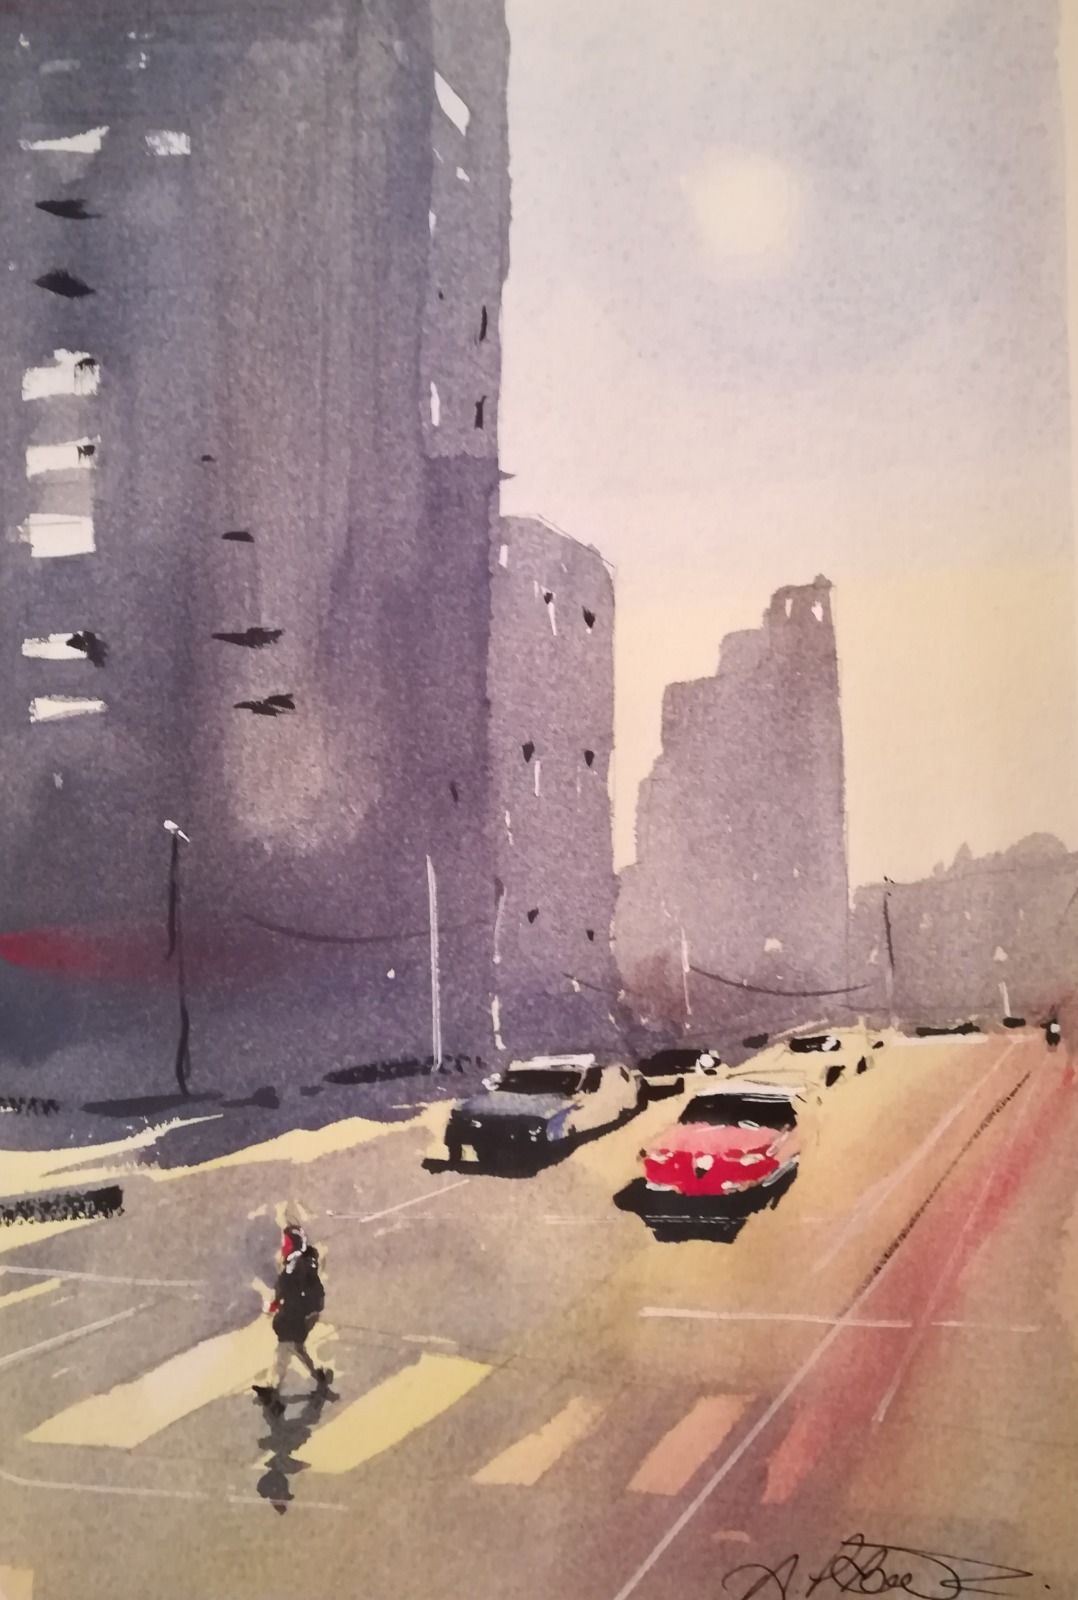 "Streetlife ~ Watercolour 11 x 7"" approx. £160.00"